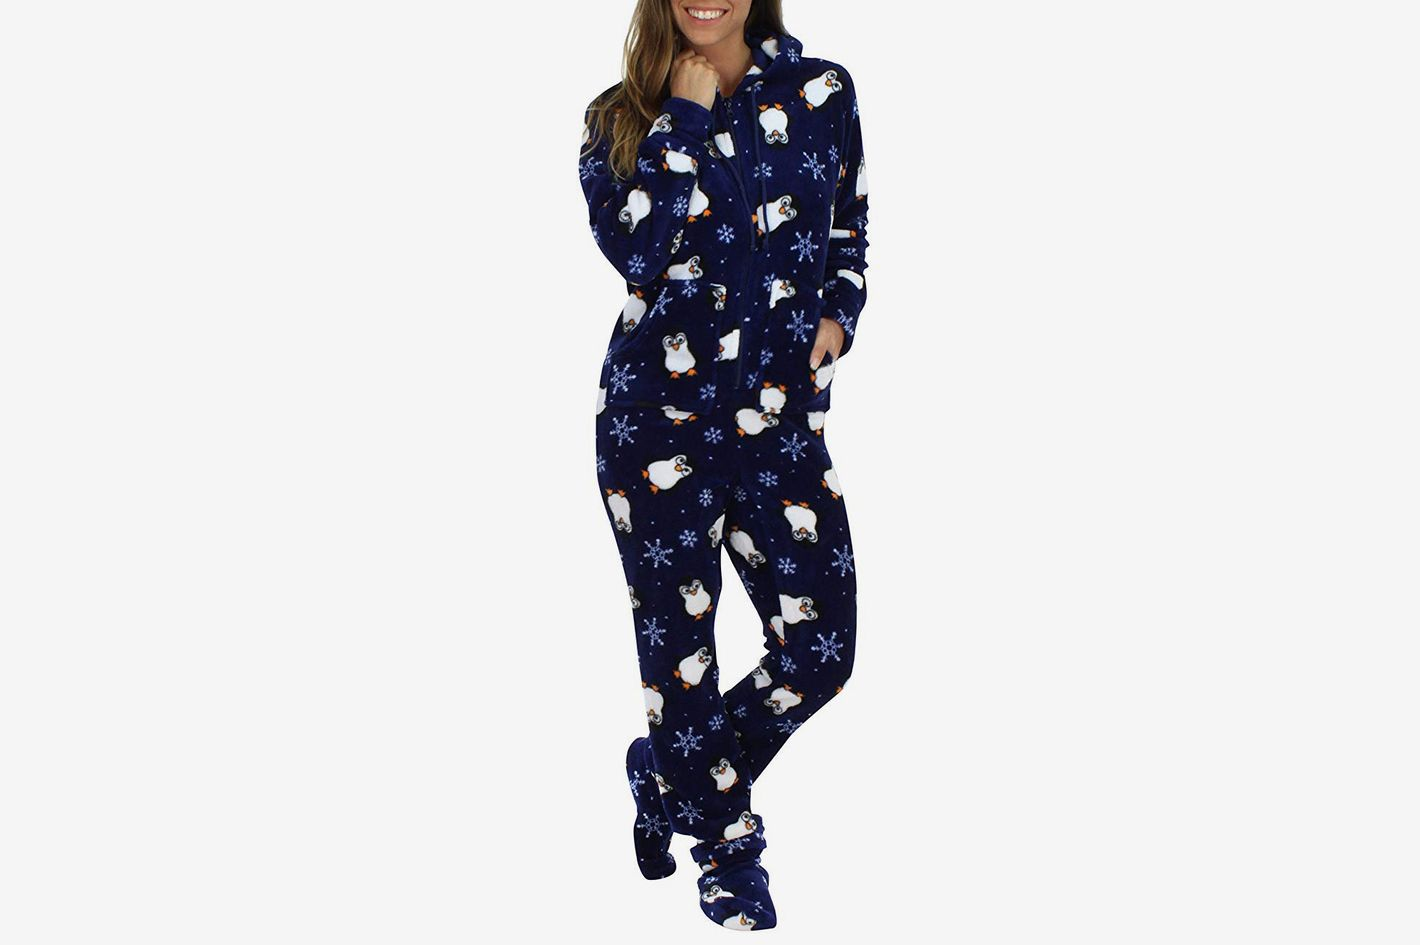 SleepytimePjs Women's Sleepwear Fleece Hooded Onesie